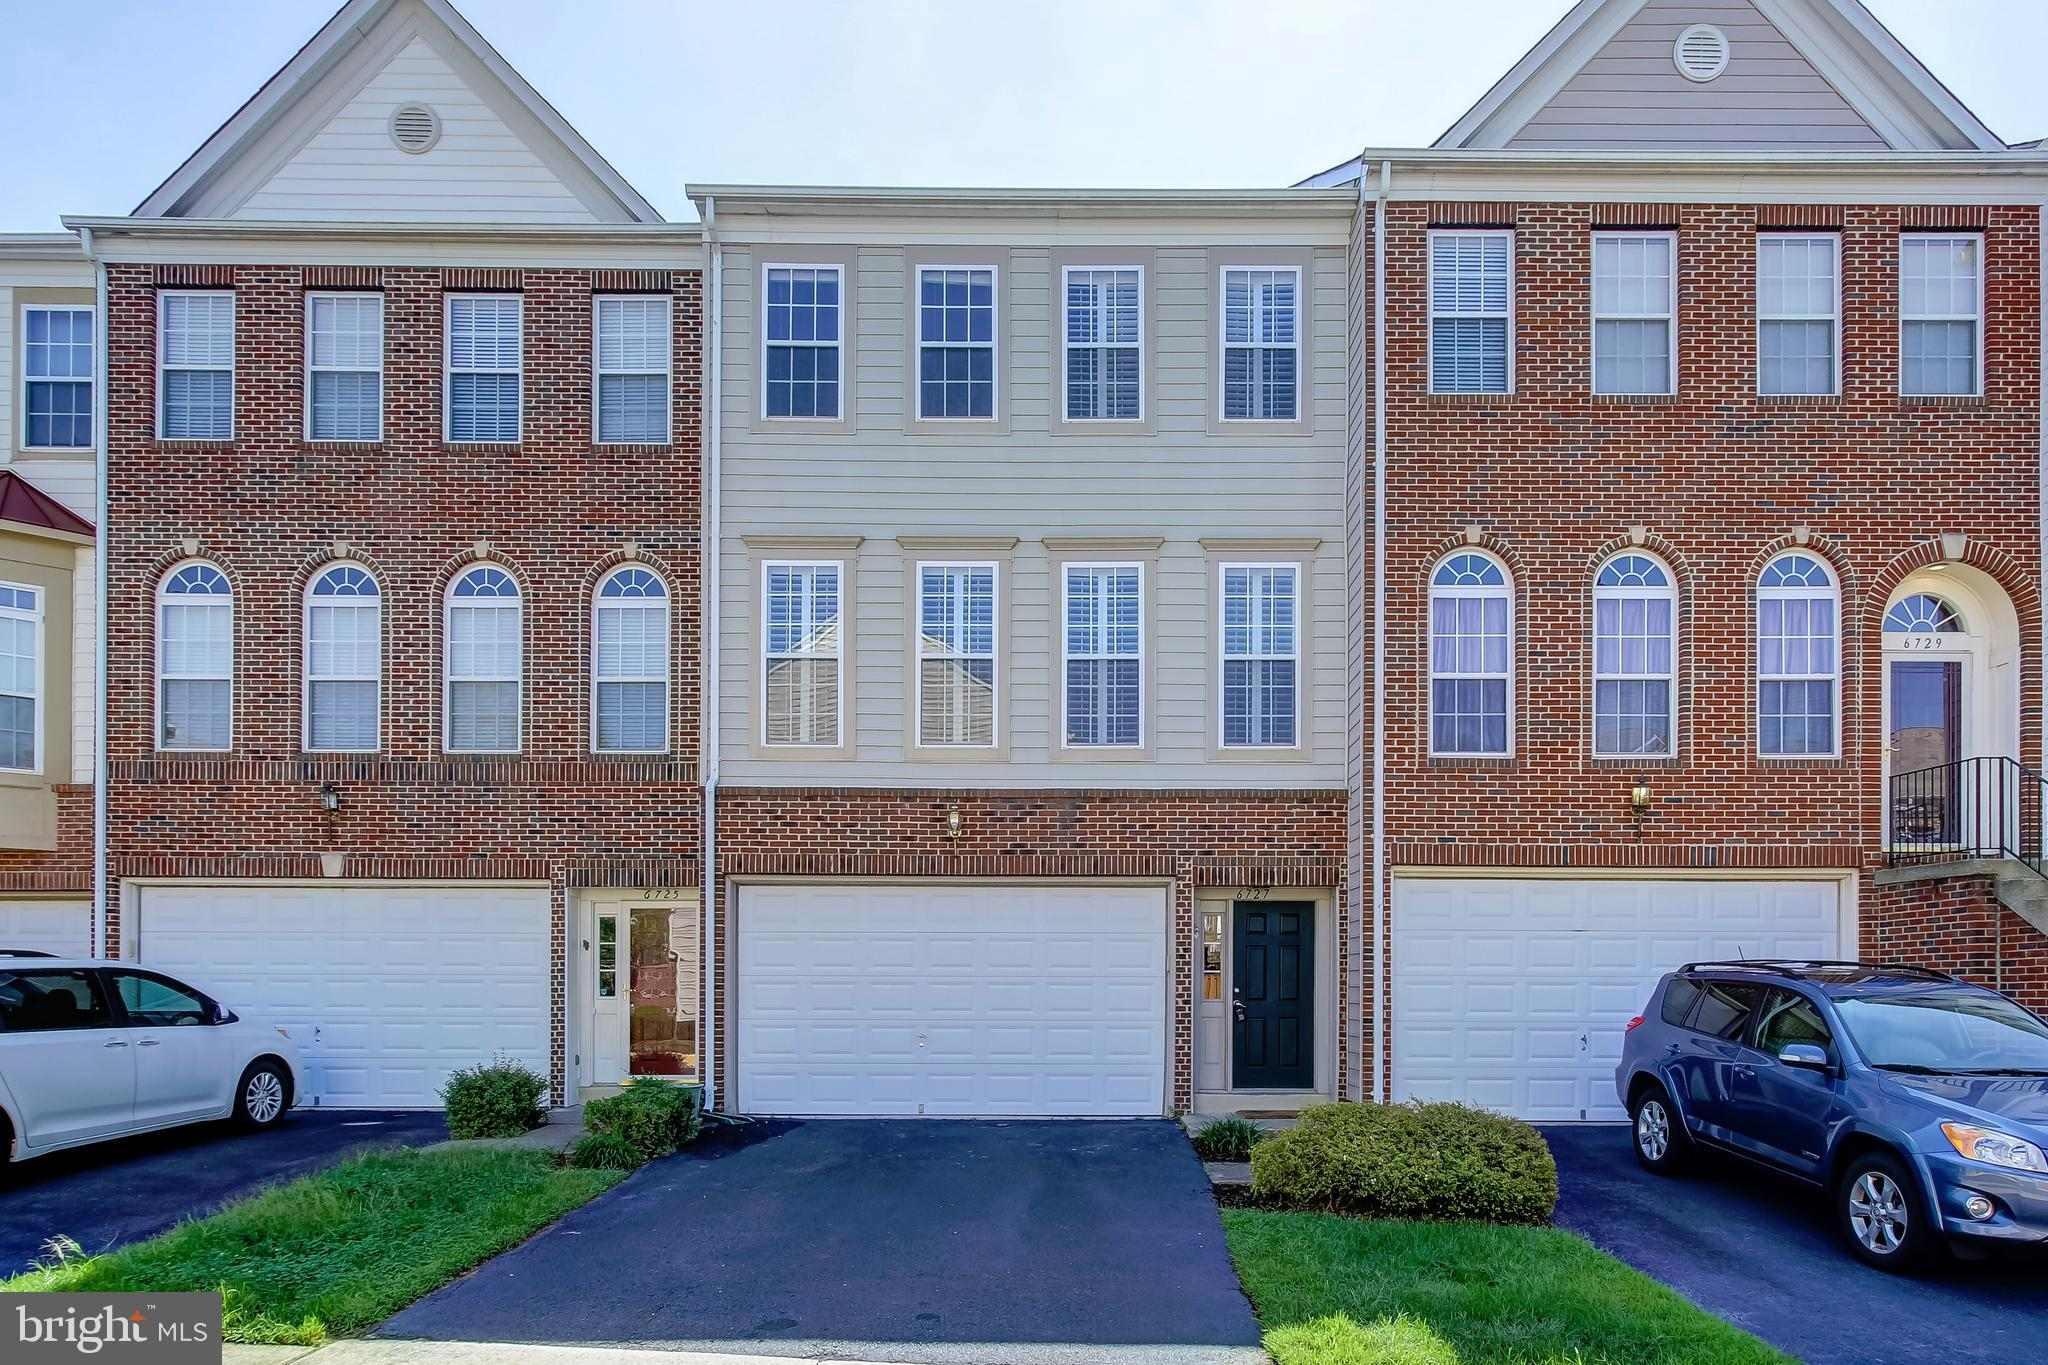 """***** NEWLY LISTED! - OPEN SUN. 9/22 FROM 3:00 - 5:00 PM. ***** WELCOME HOME TO 6727 APPLEMINT LANE, - - located in the Autumn Chase Hunt Kingstowne area!  This beautifully renovated townhome is in picture perfect move-in-condition, featuring 3 Finished Levels, 3 Bedrooms , 3 Full and 1 Half Baths, Gas Fireplace, 2-Car Garage plus 2-Car Driveway, and finished lower level with walk-out to rear yard.  Premium area and neighborhood location, ---backing to common and wooded area with no other homes behind you!  Exceptionally spacious home with open floor plan, generous room sizes with 9-FOOT CEILINGS ON ALL 3 LEVELS, and nice flow throughout. Beautifully updated, including kitchen and baths, and many nice custom details throughout for today's value conscious home buyer! ***** SEE VIRTUAL TOUR LINK FOR """"INTERACTIVE"""" FLOOR PLAN! ***** All information deemed reliable but not guaranteed with room dimensions approximate."""